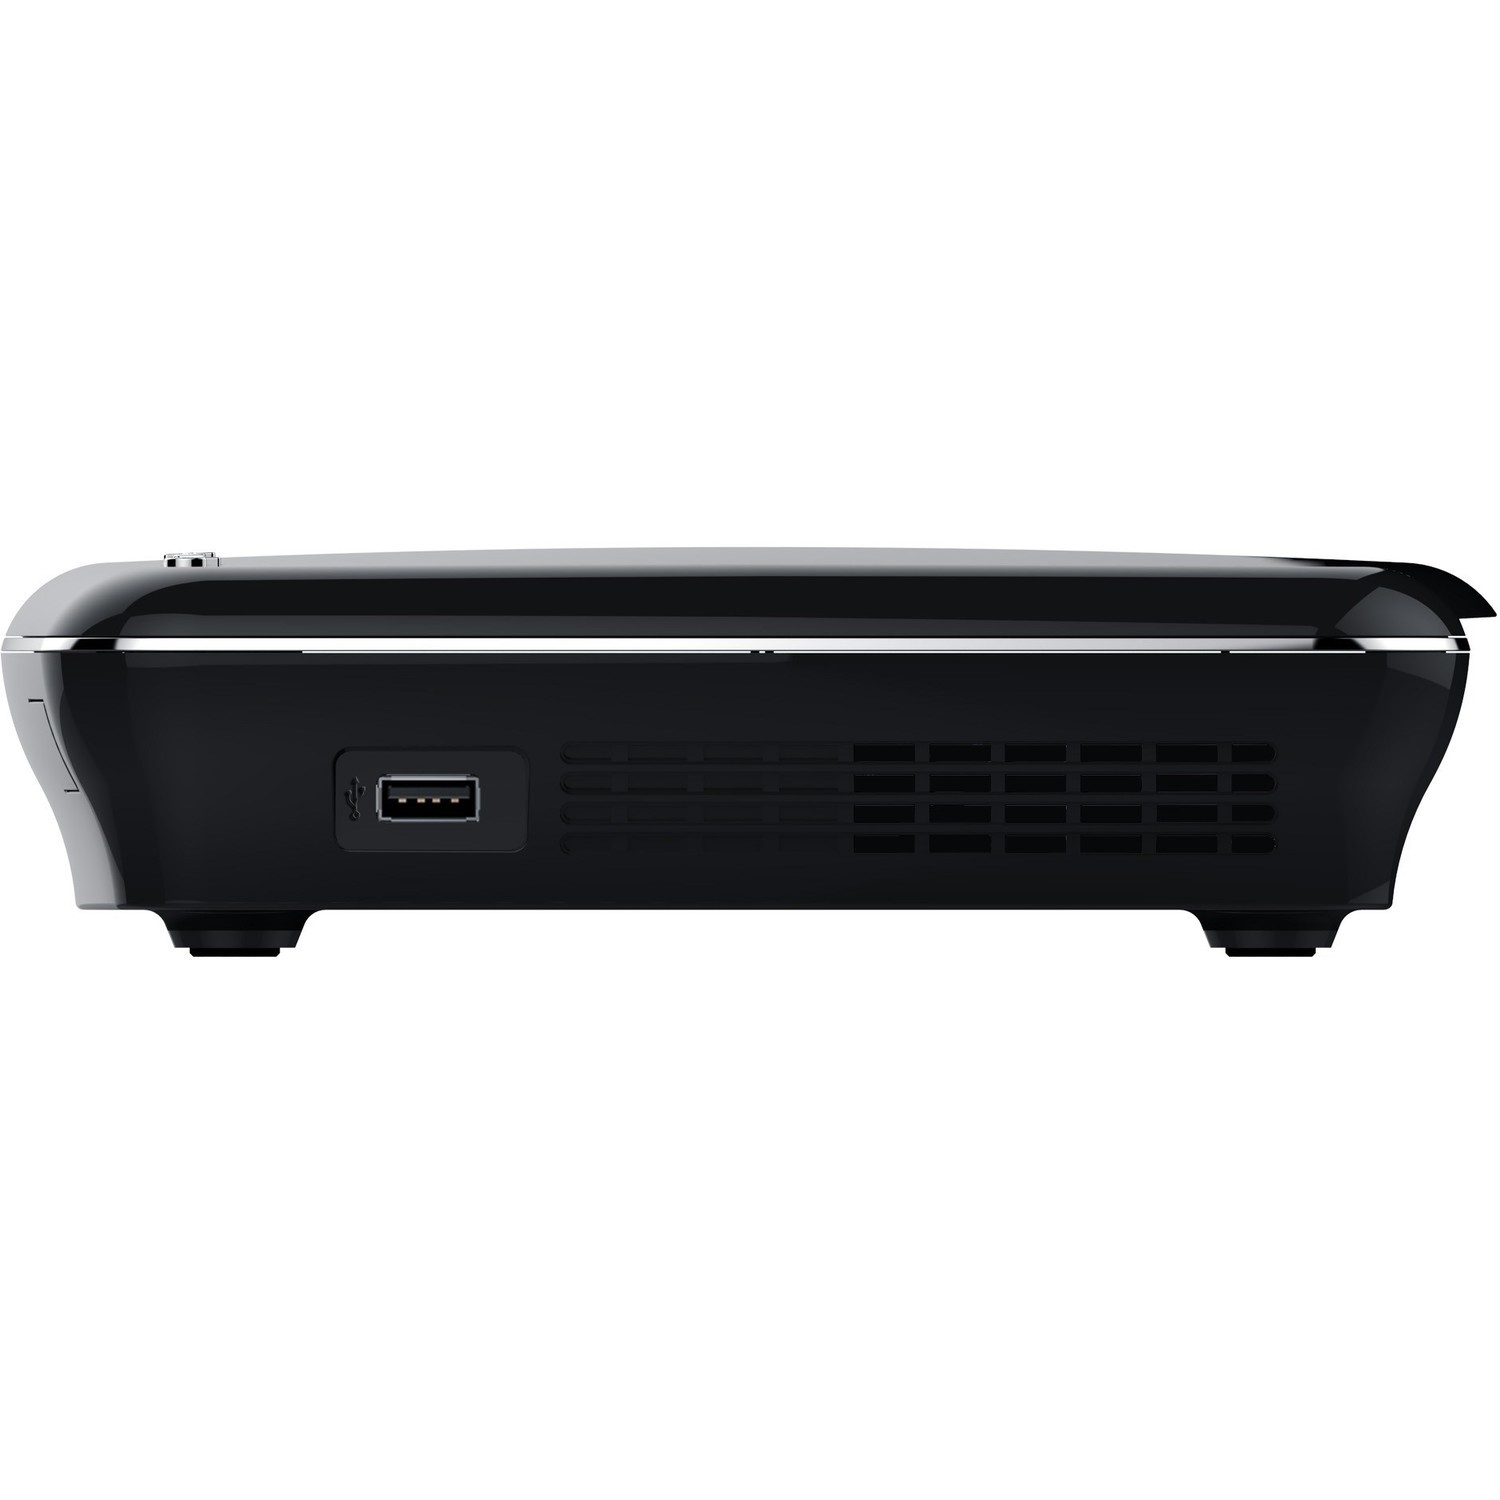 Humax HDR-1100S 500GB Smart Freesat HD TV Recorder with Built-in Wi-Fi